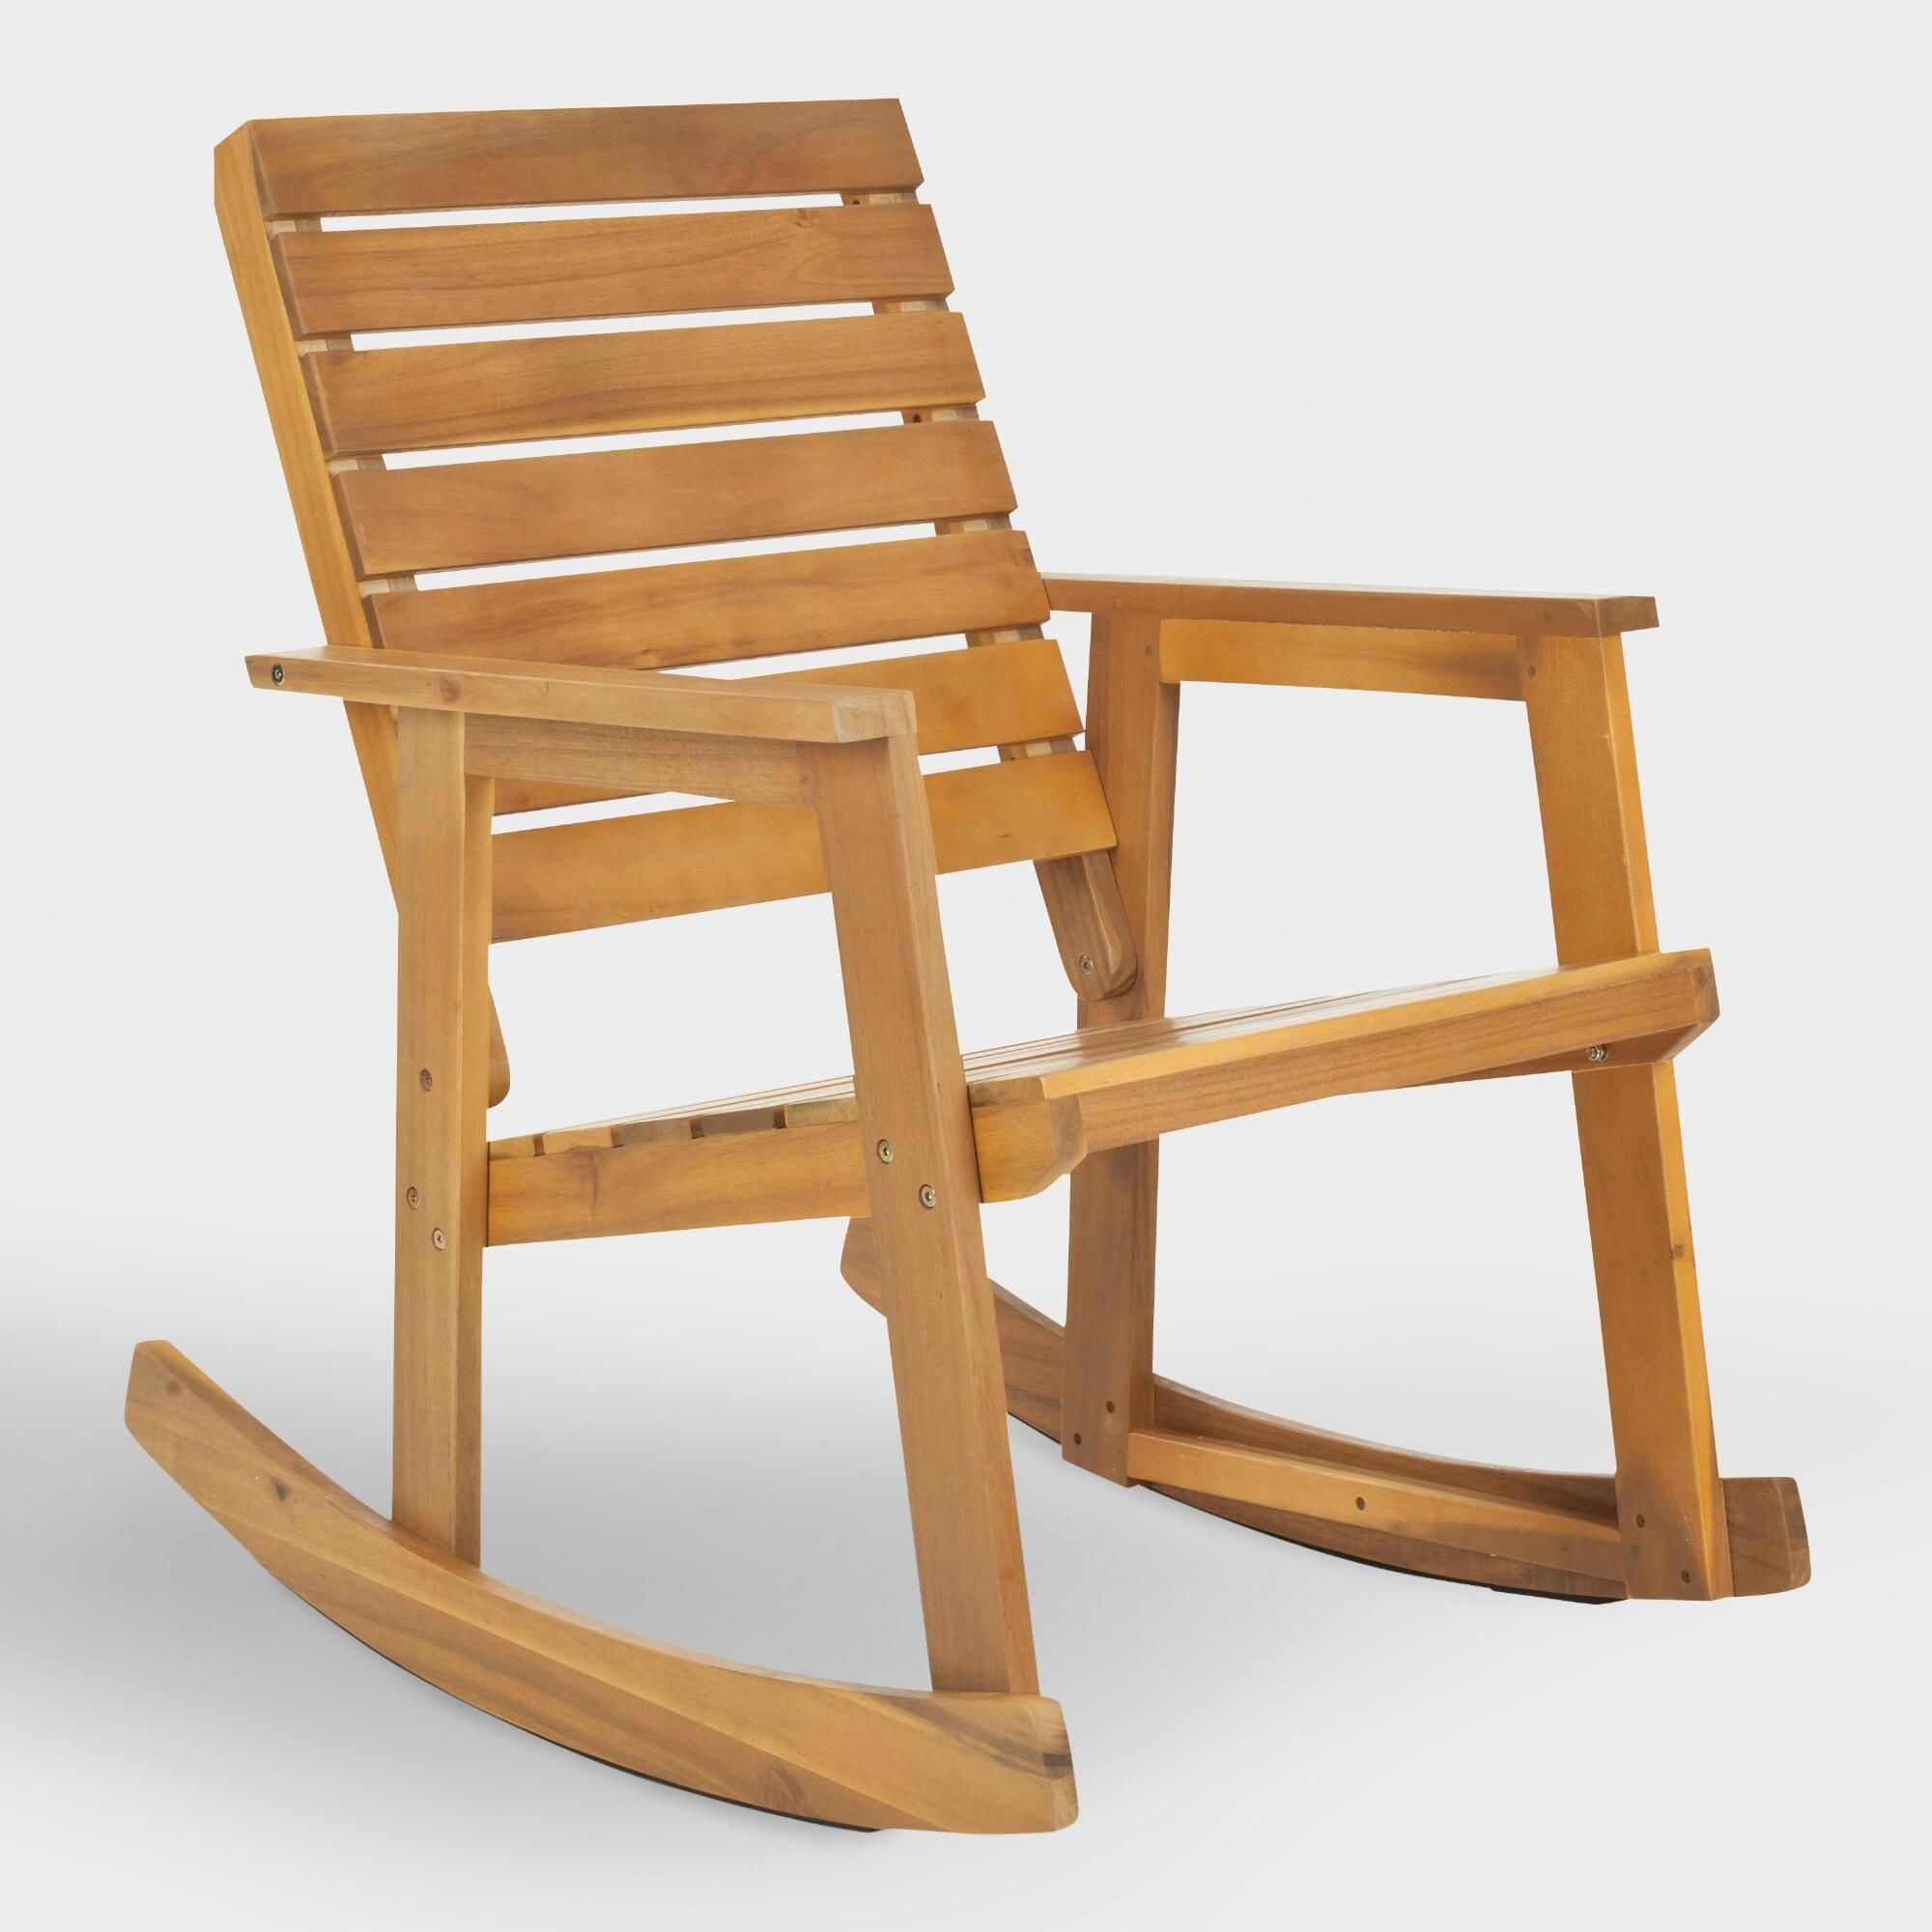 Natural Brown Wood Outdoor Patio Rocking Chairworld Regarding Natural Brown Wood Folding Rocking Chairs (#17 of 20)